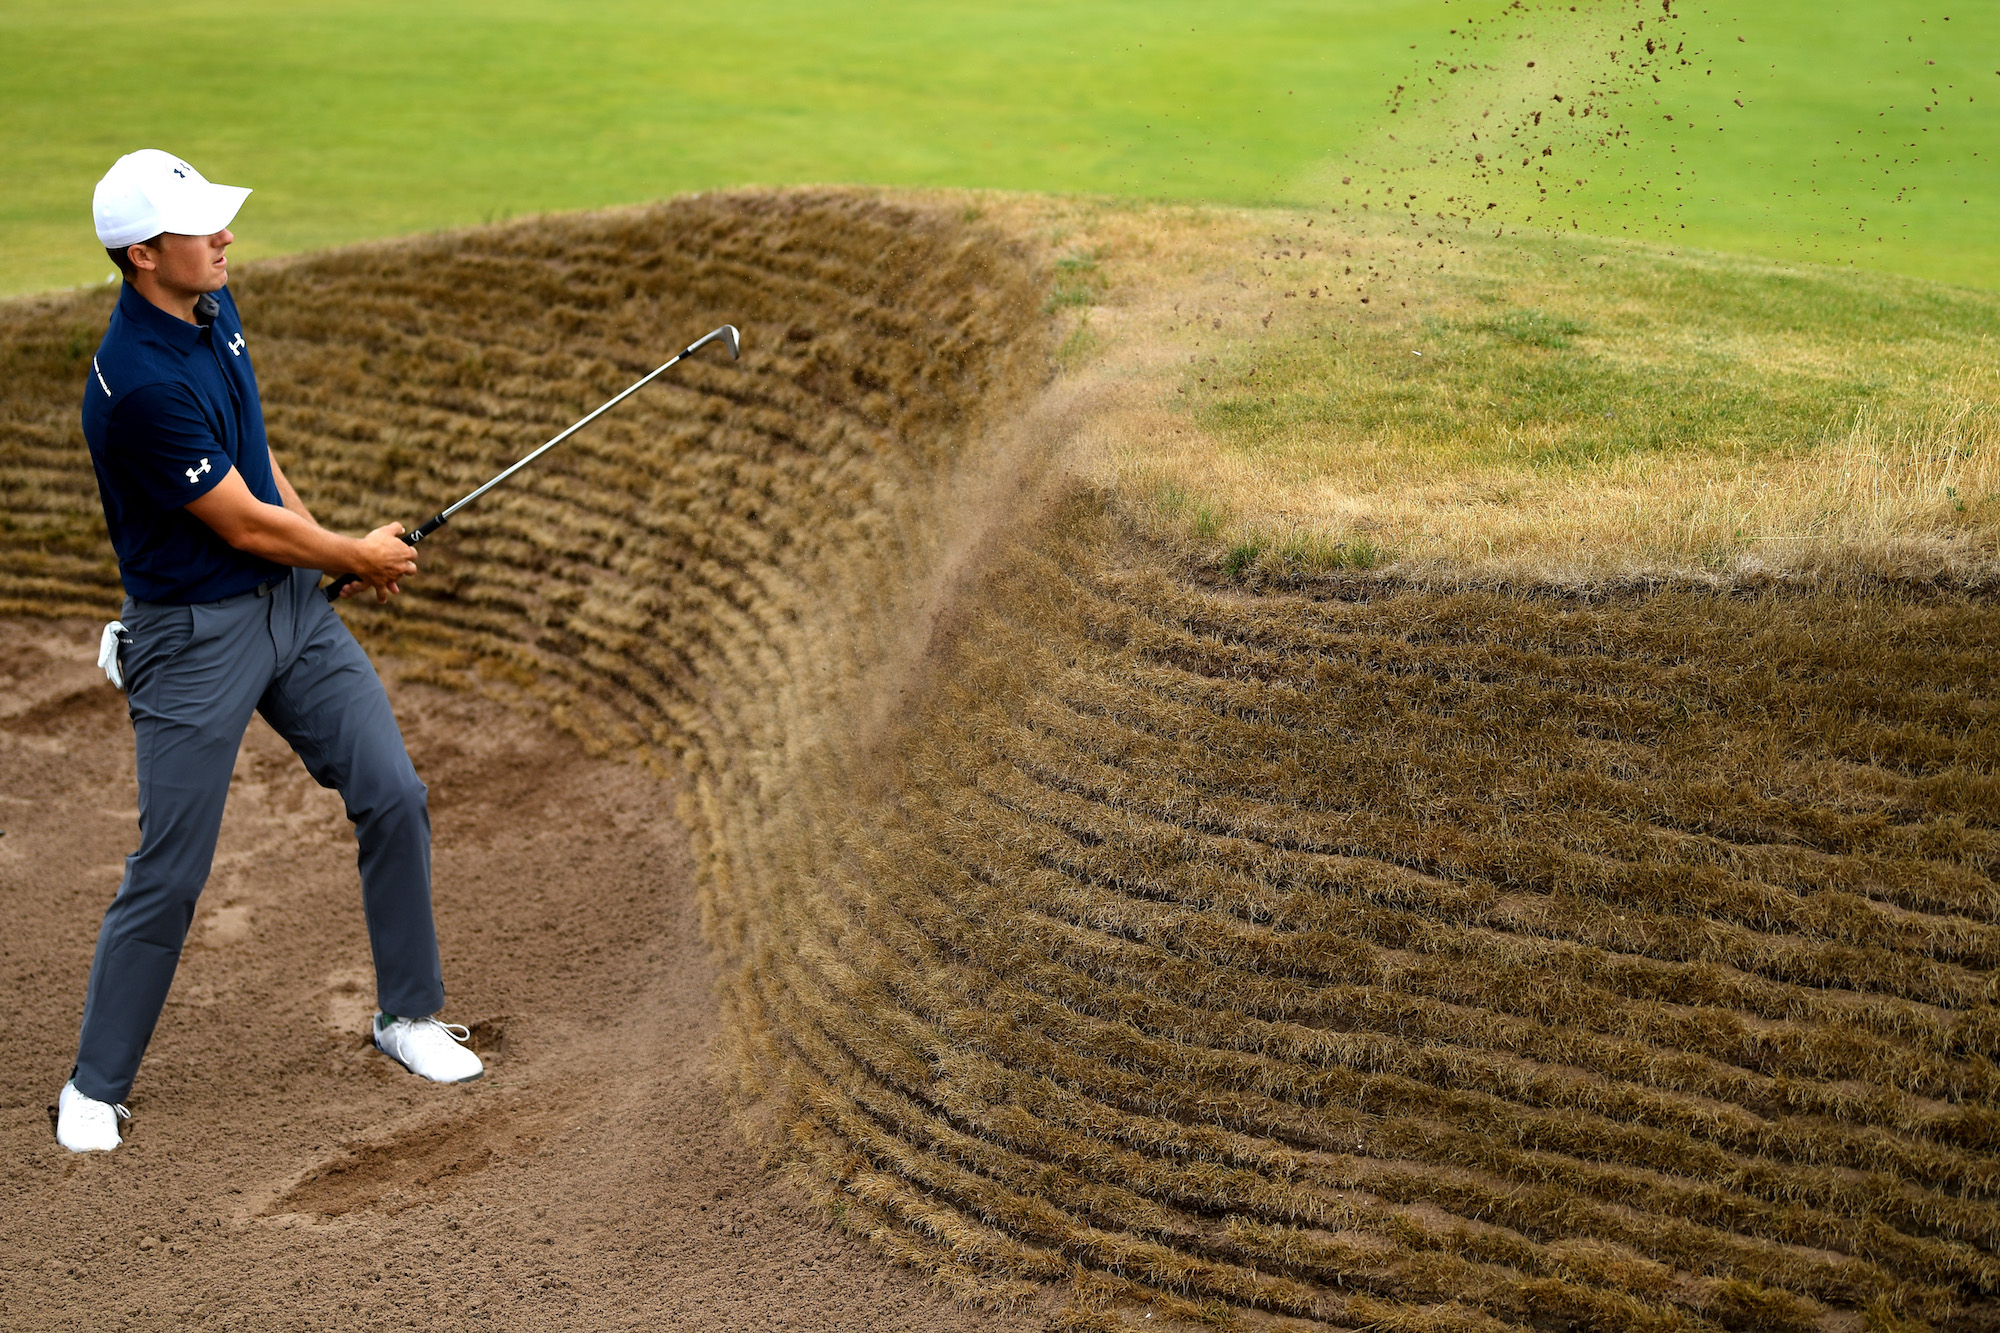 2018 Open Championship: Previews - Hitting out of the Bunker at the 14th Green